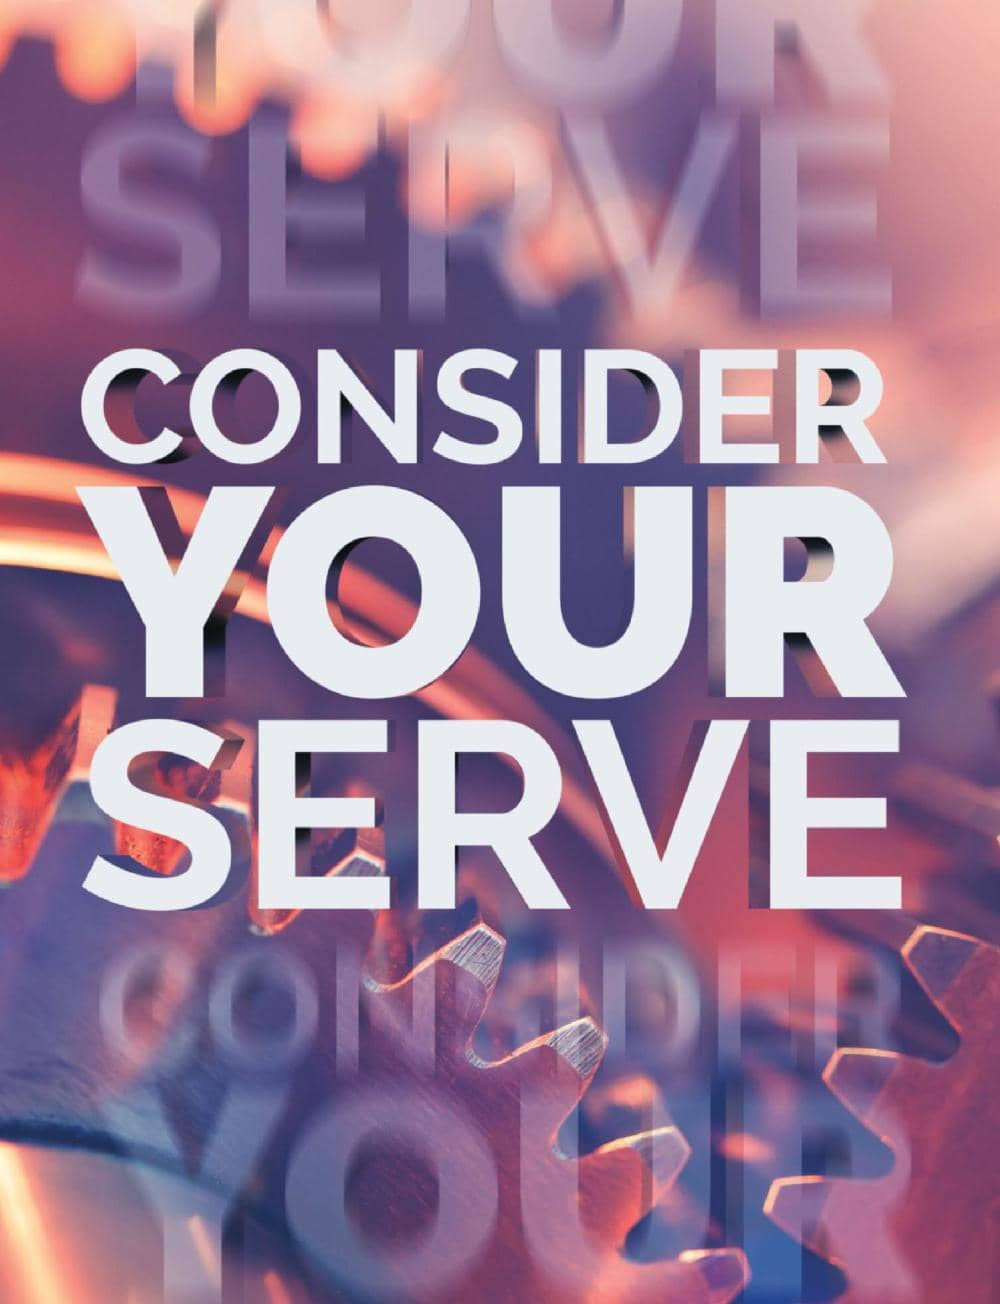 CONSIDER YOUR SERVE